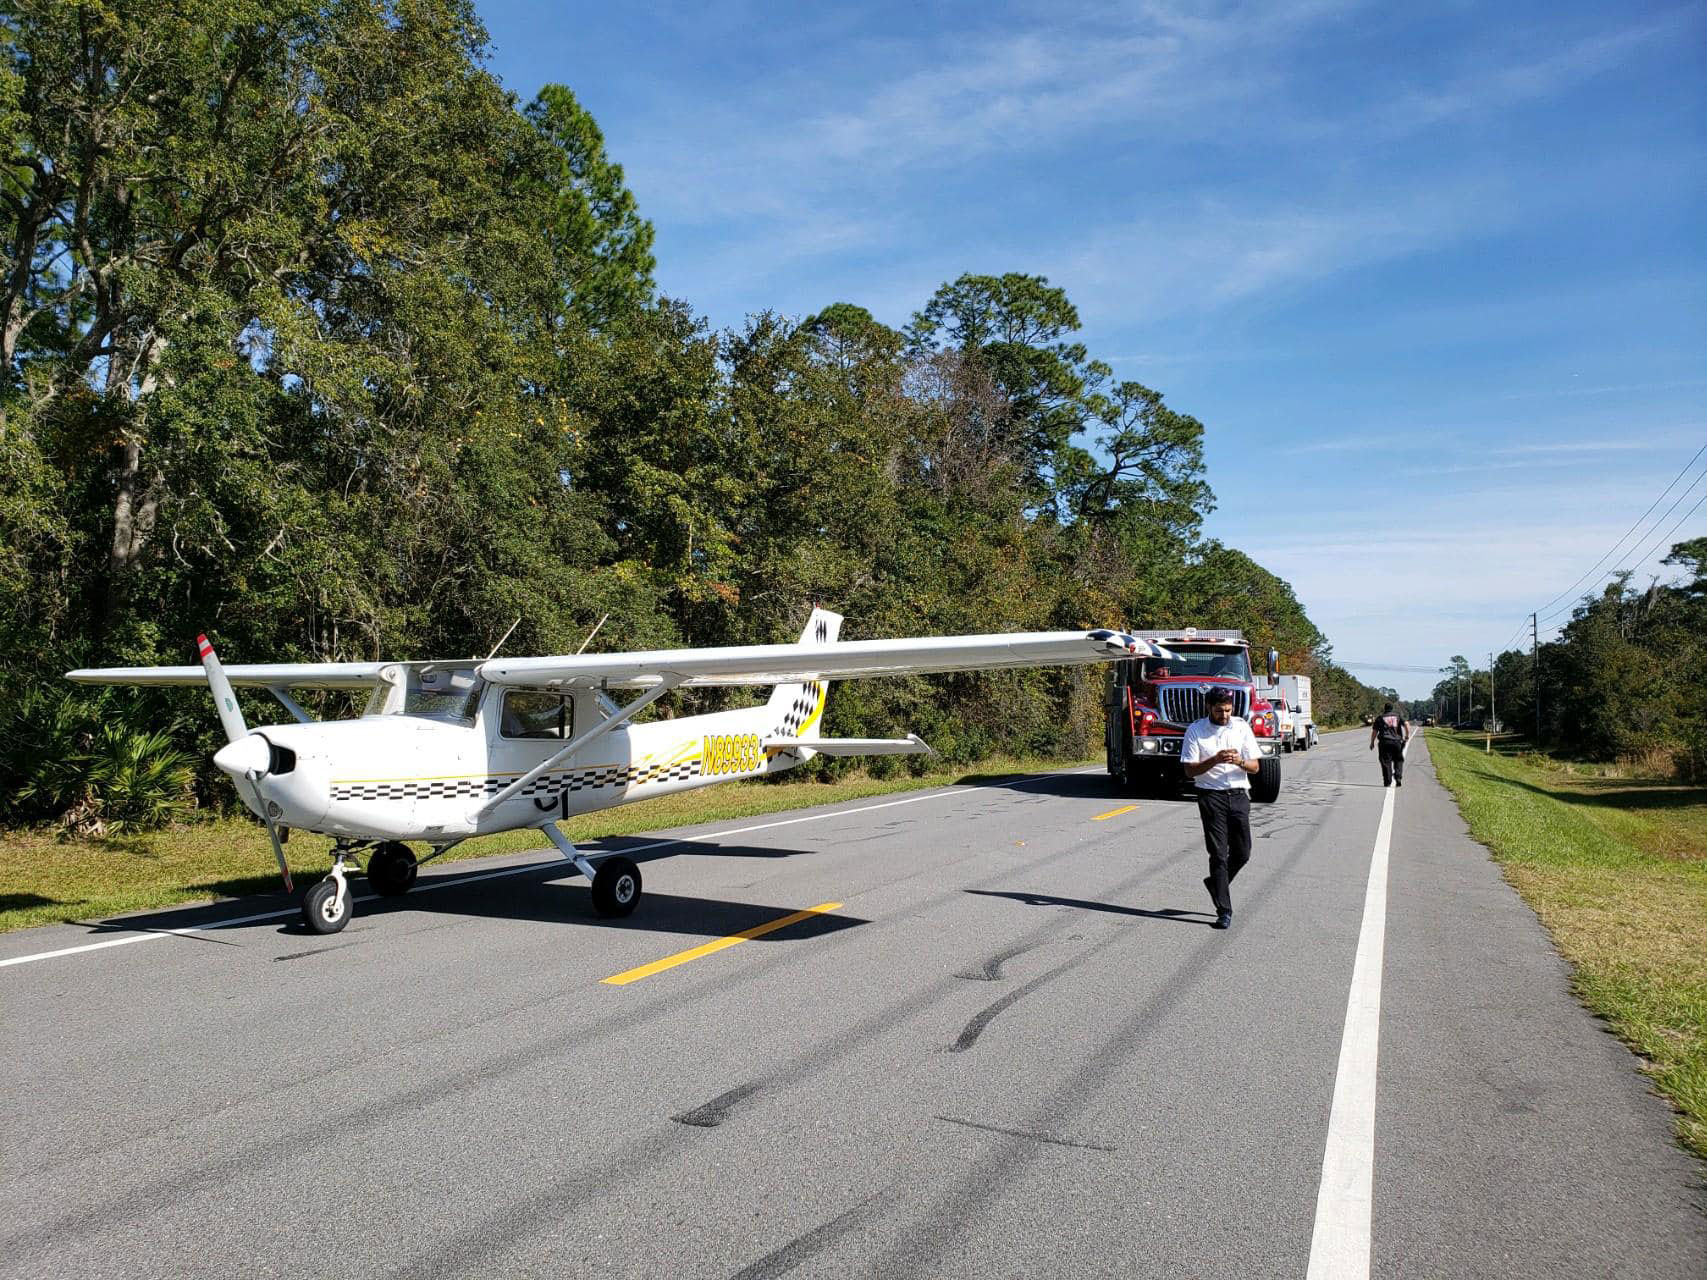 Abdullah Khawja after making the emergency landing on County Road 205 this afternoon. The power lines he swooped under are visible in the background. (Flagler County Professional Firefighters)